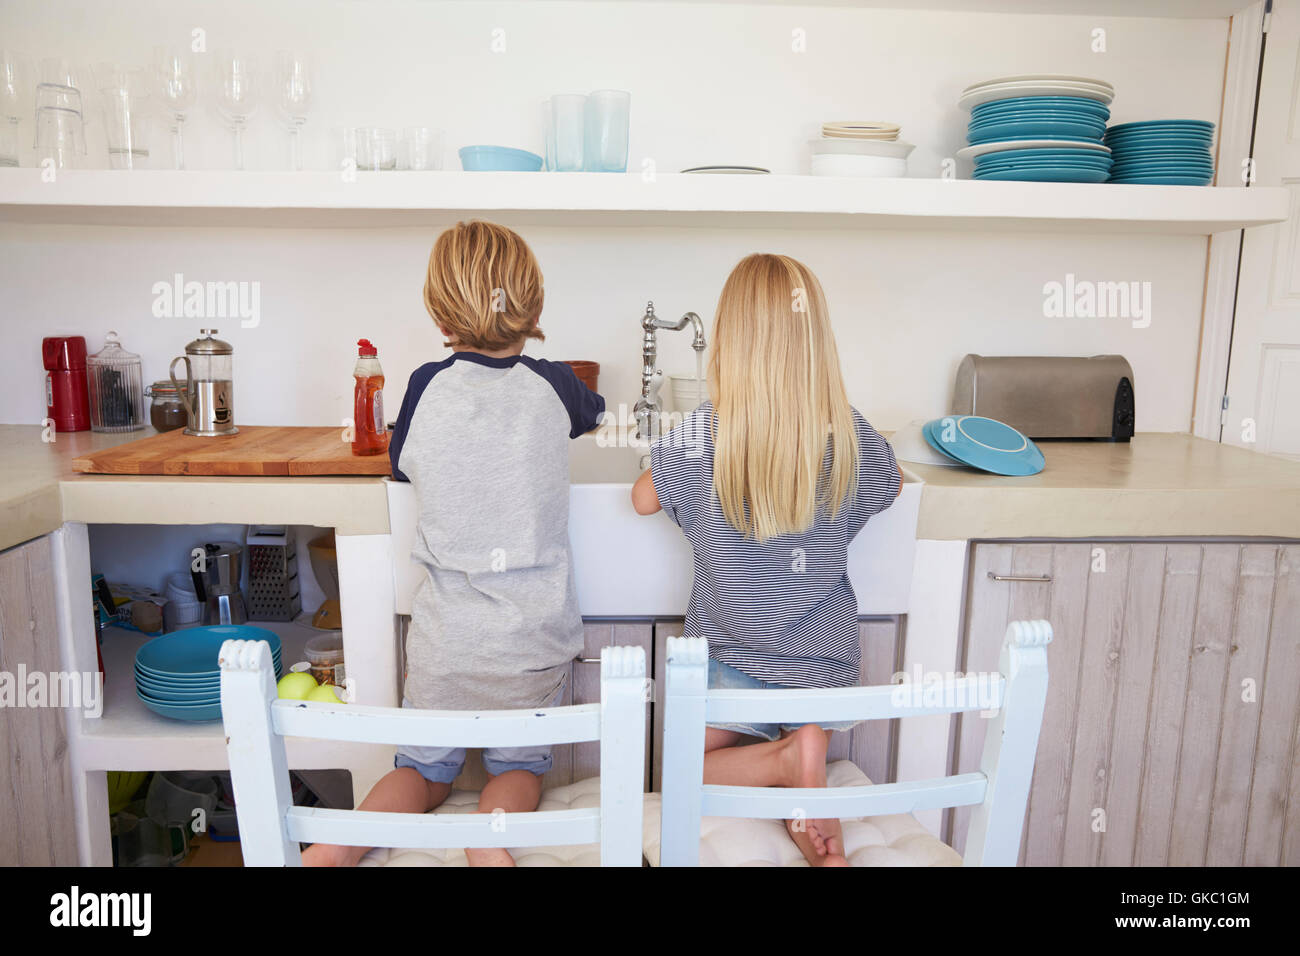 Brother and sister kneeling on chairs to wash up, back view - Stock Image